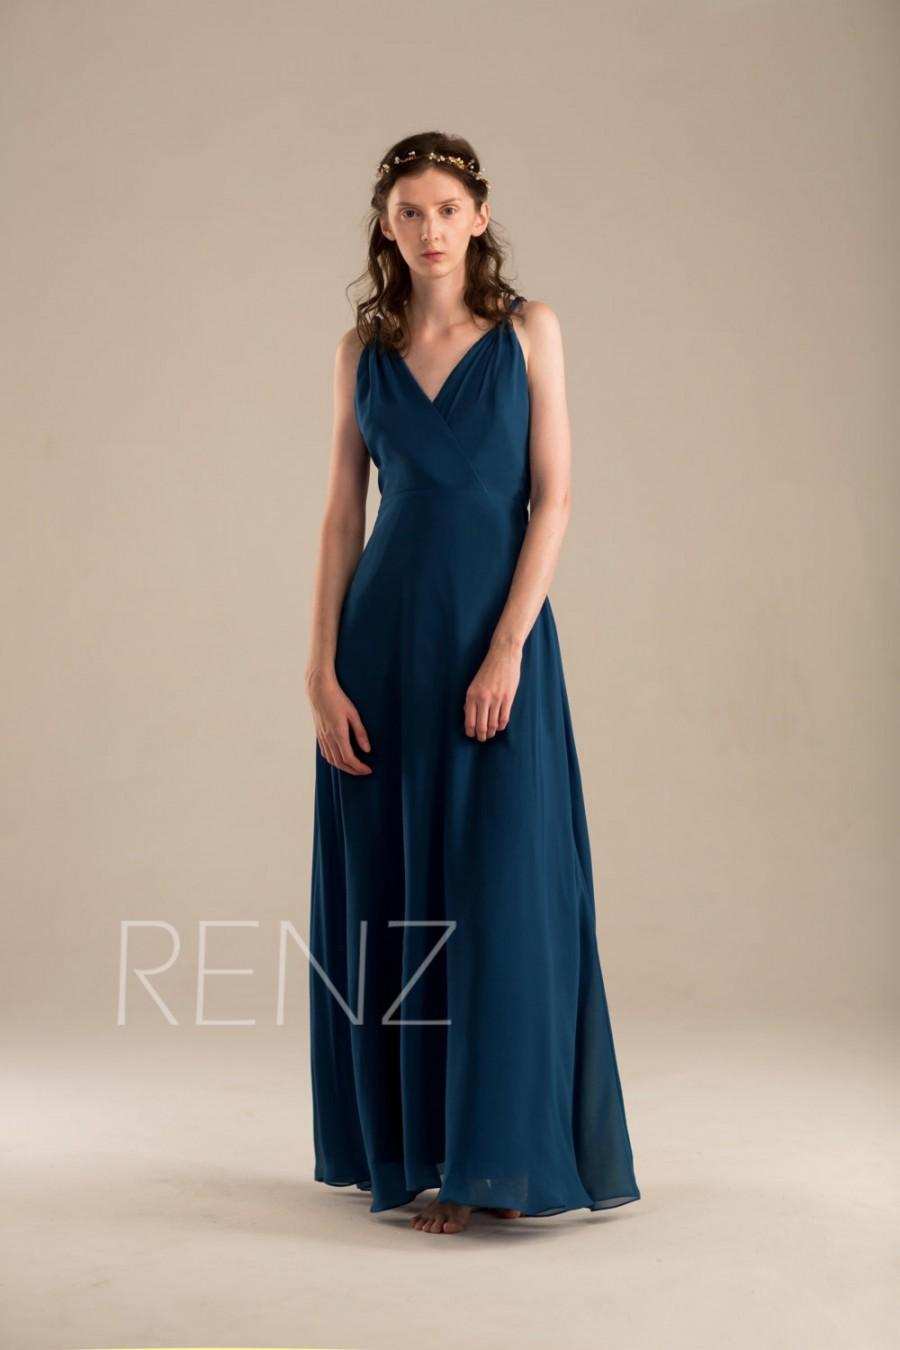 2015 long navy blue bridesmaid dress v neck maxi dress fitted 2015 long navy blue bridesmaid dress v neck maxi dress fitted evening dress open back formal dress prom dress floor length h051 ombrellifo Image collections